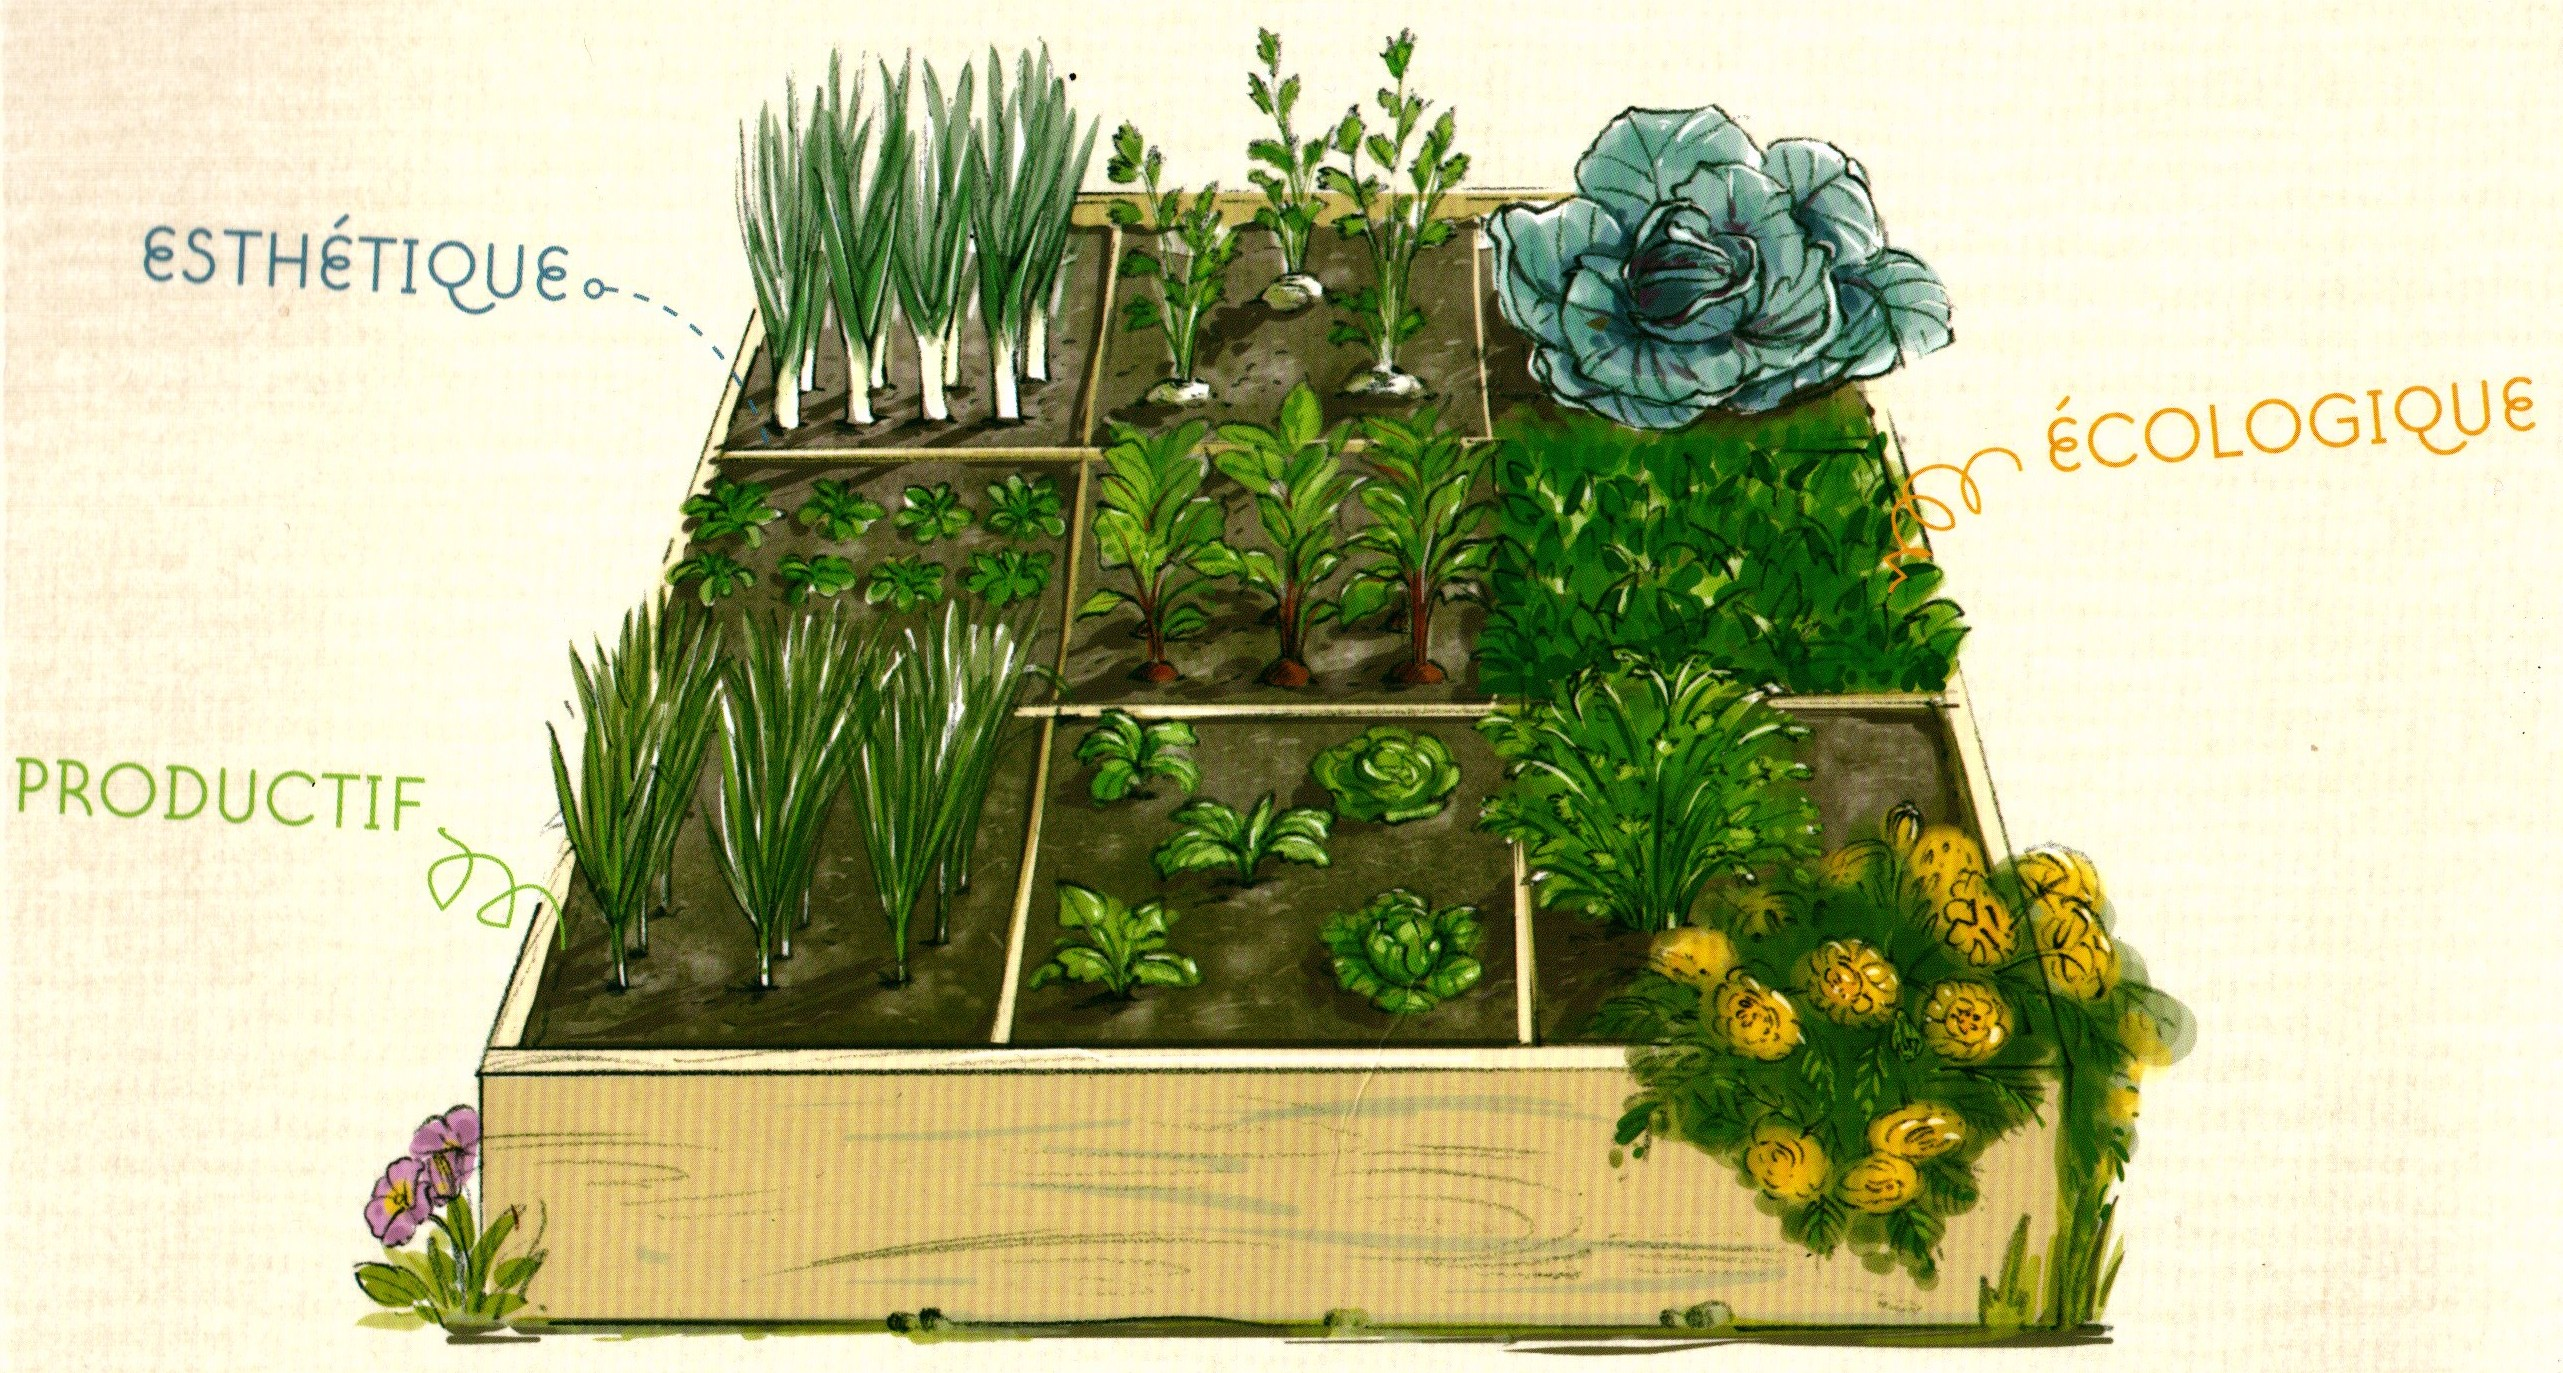 College pierre vernier ornans le jardin en carr s for Jardin en carres plan